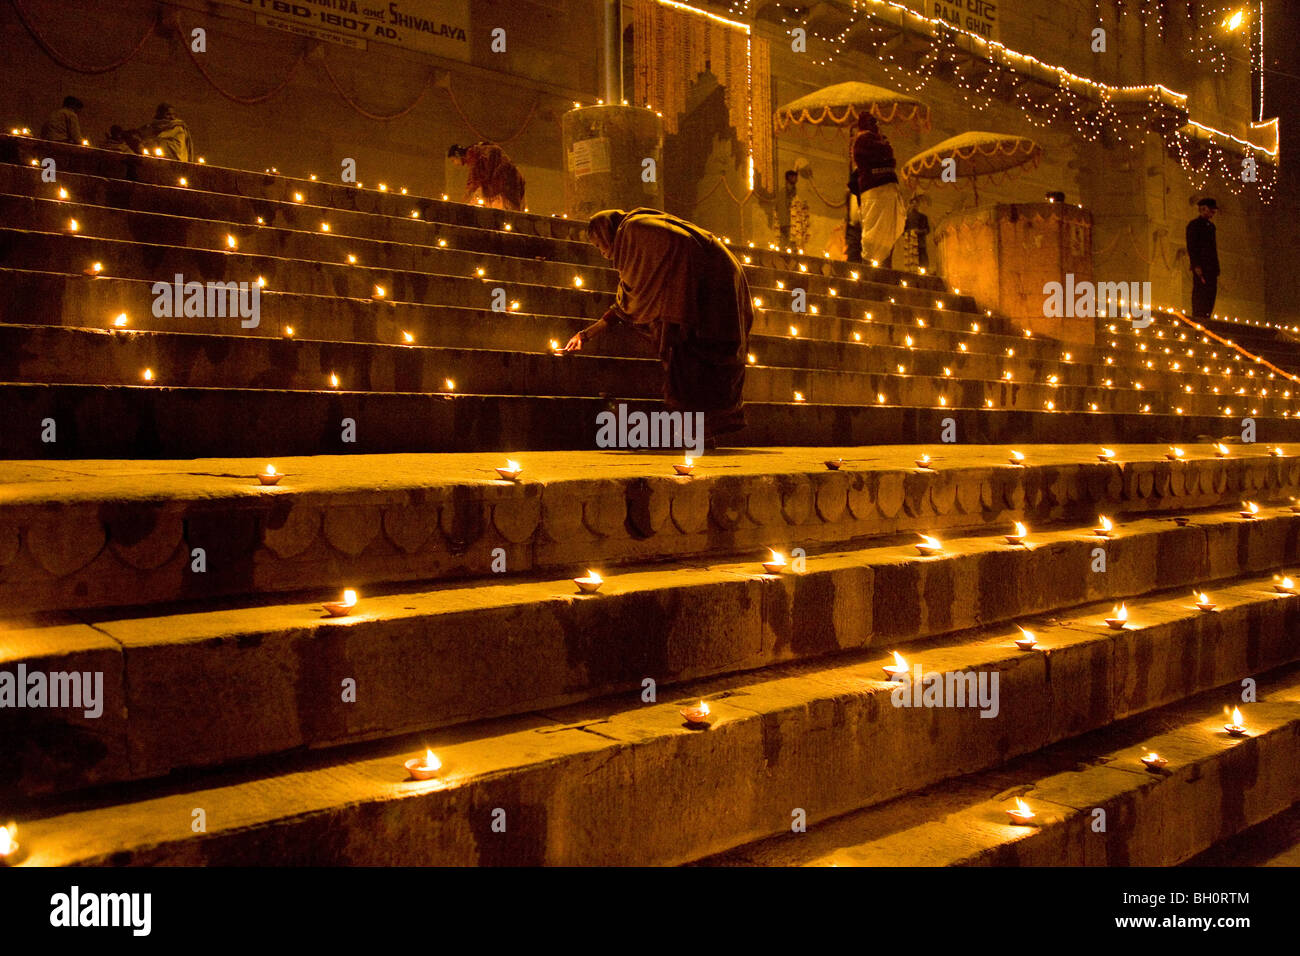 Night lamps india - A Priest Lights Lamps On The Steps Of The Ram Ghat In Varanasi India This Ritual Is Part Of The Ganga Aarthi